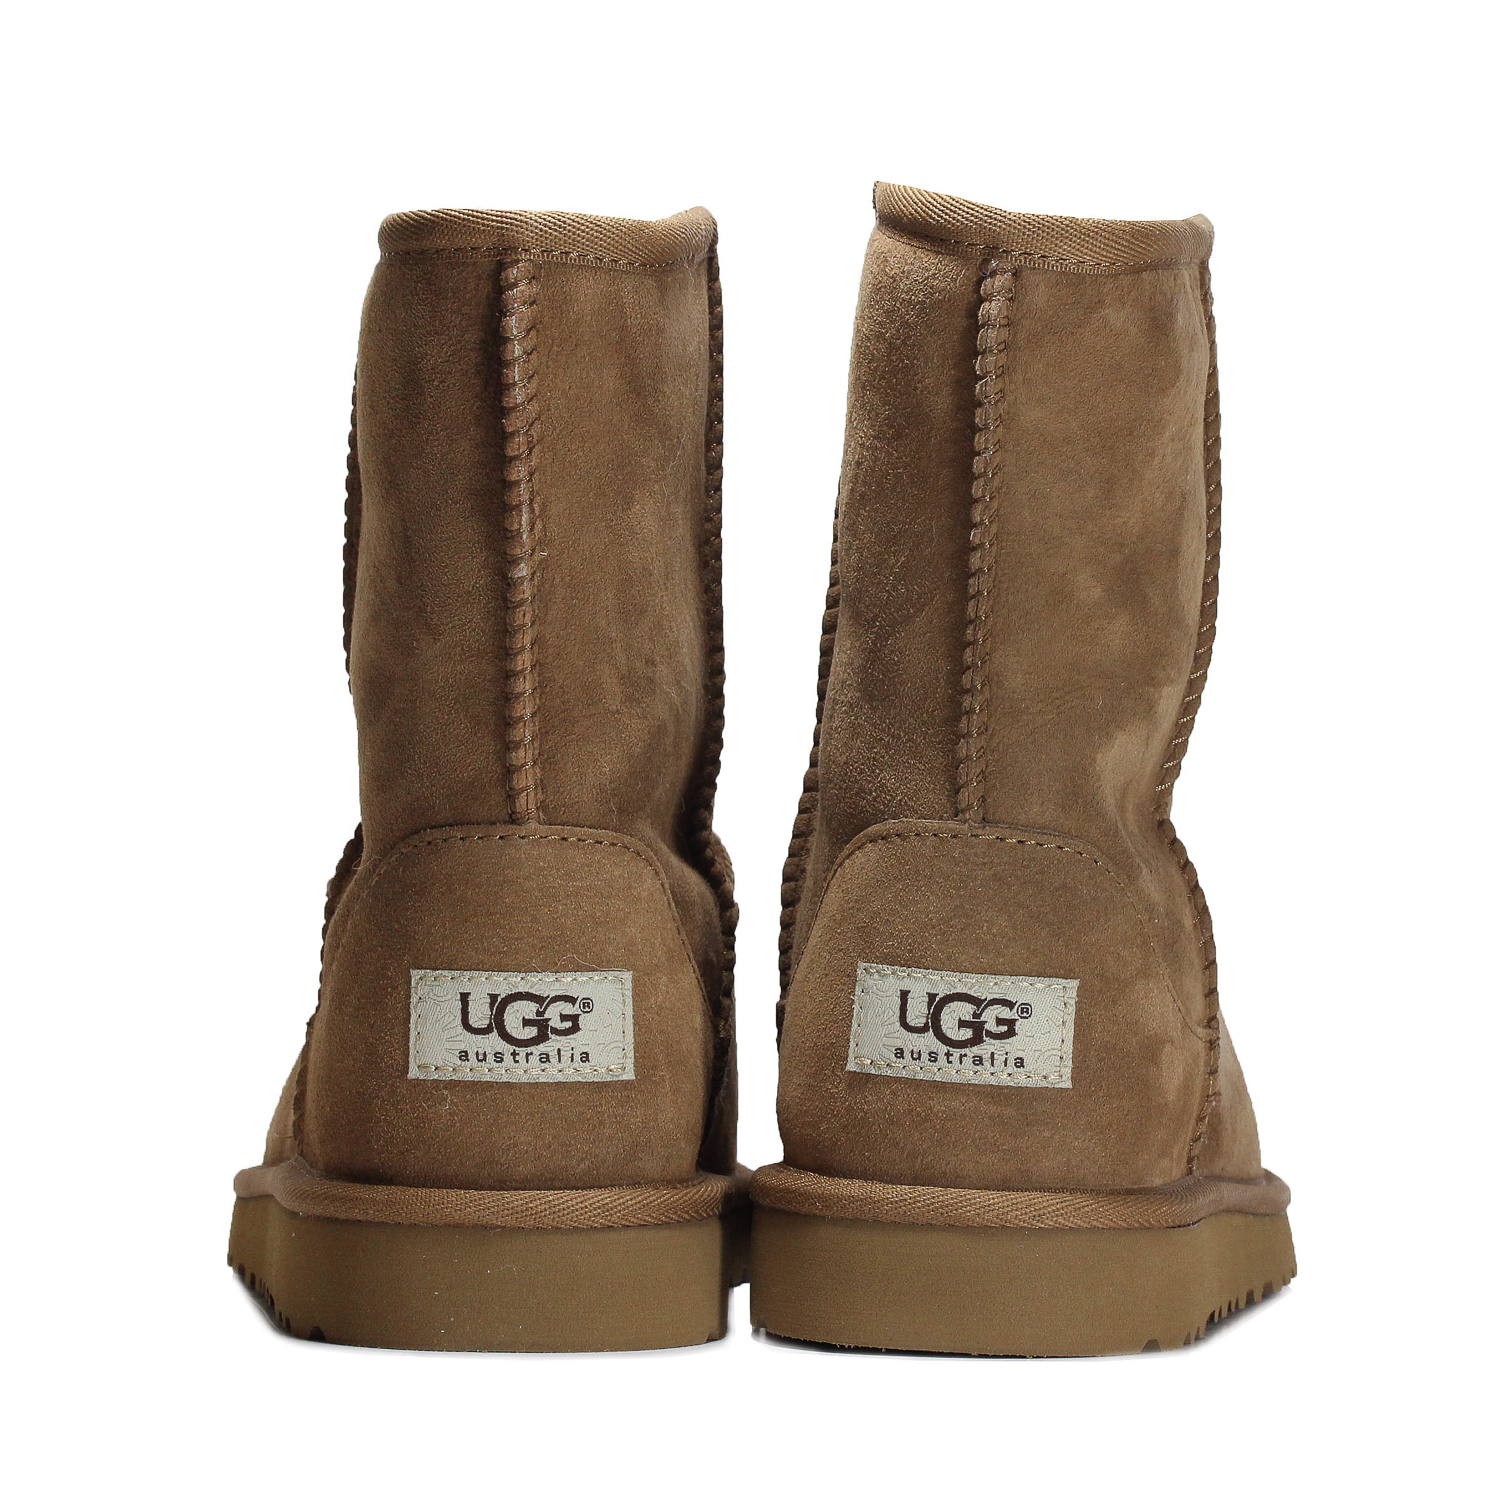 c007bd9c8b0 Details about UGG Australia Toddler Classic Boot 5251K Shoes Chestnut